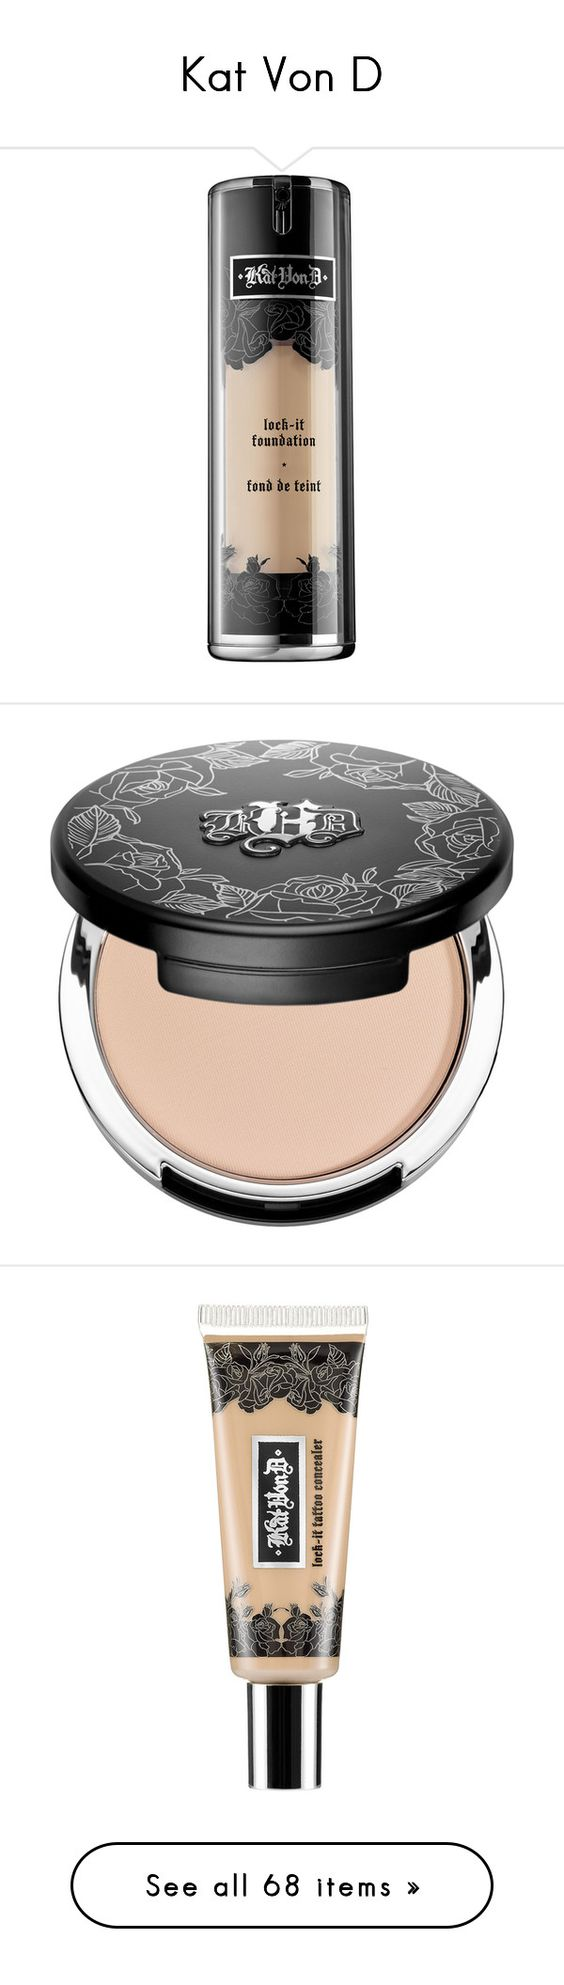 """""""Kat Von D"""" by shoppings9 ❤ liked on Polyvore featuring beauty products, makeup, face makeup, foundation, paraben free foundation, moisturizing foundation, kat von d foundation, spray foundation, matte finish foundation en beauty"""